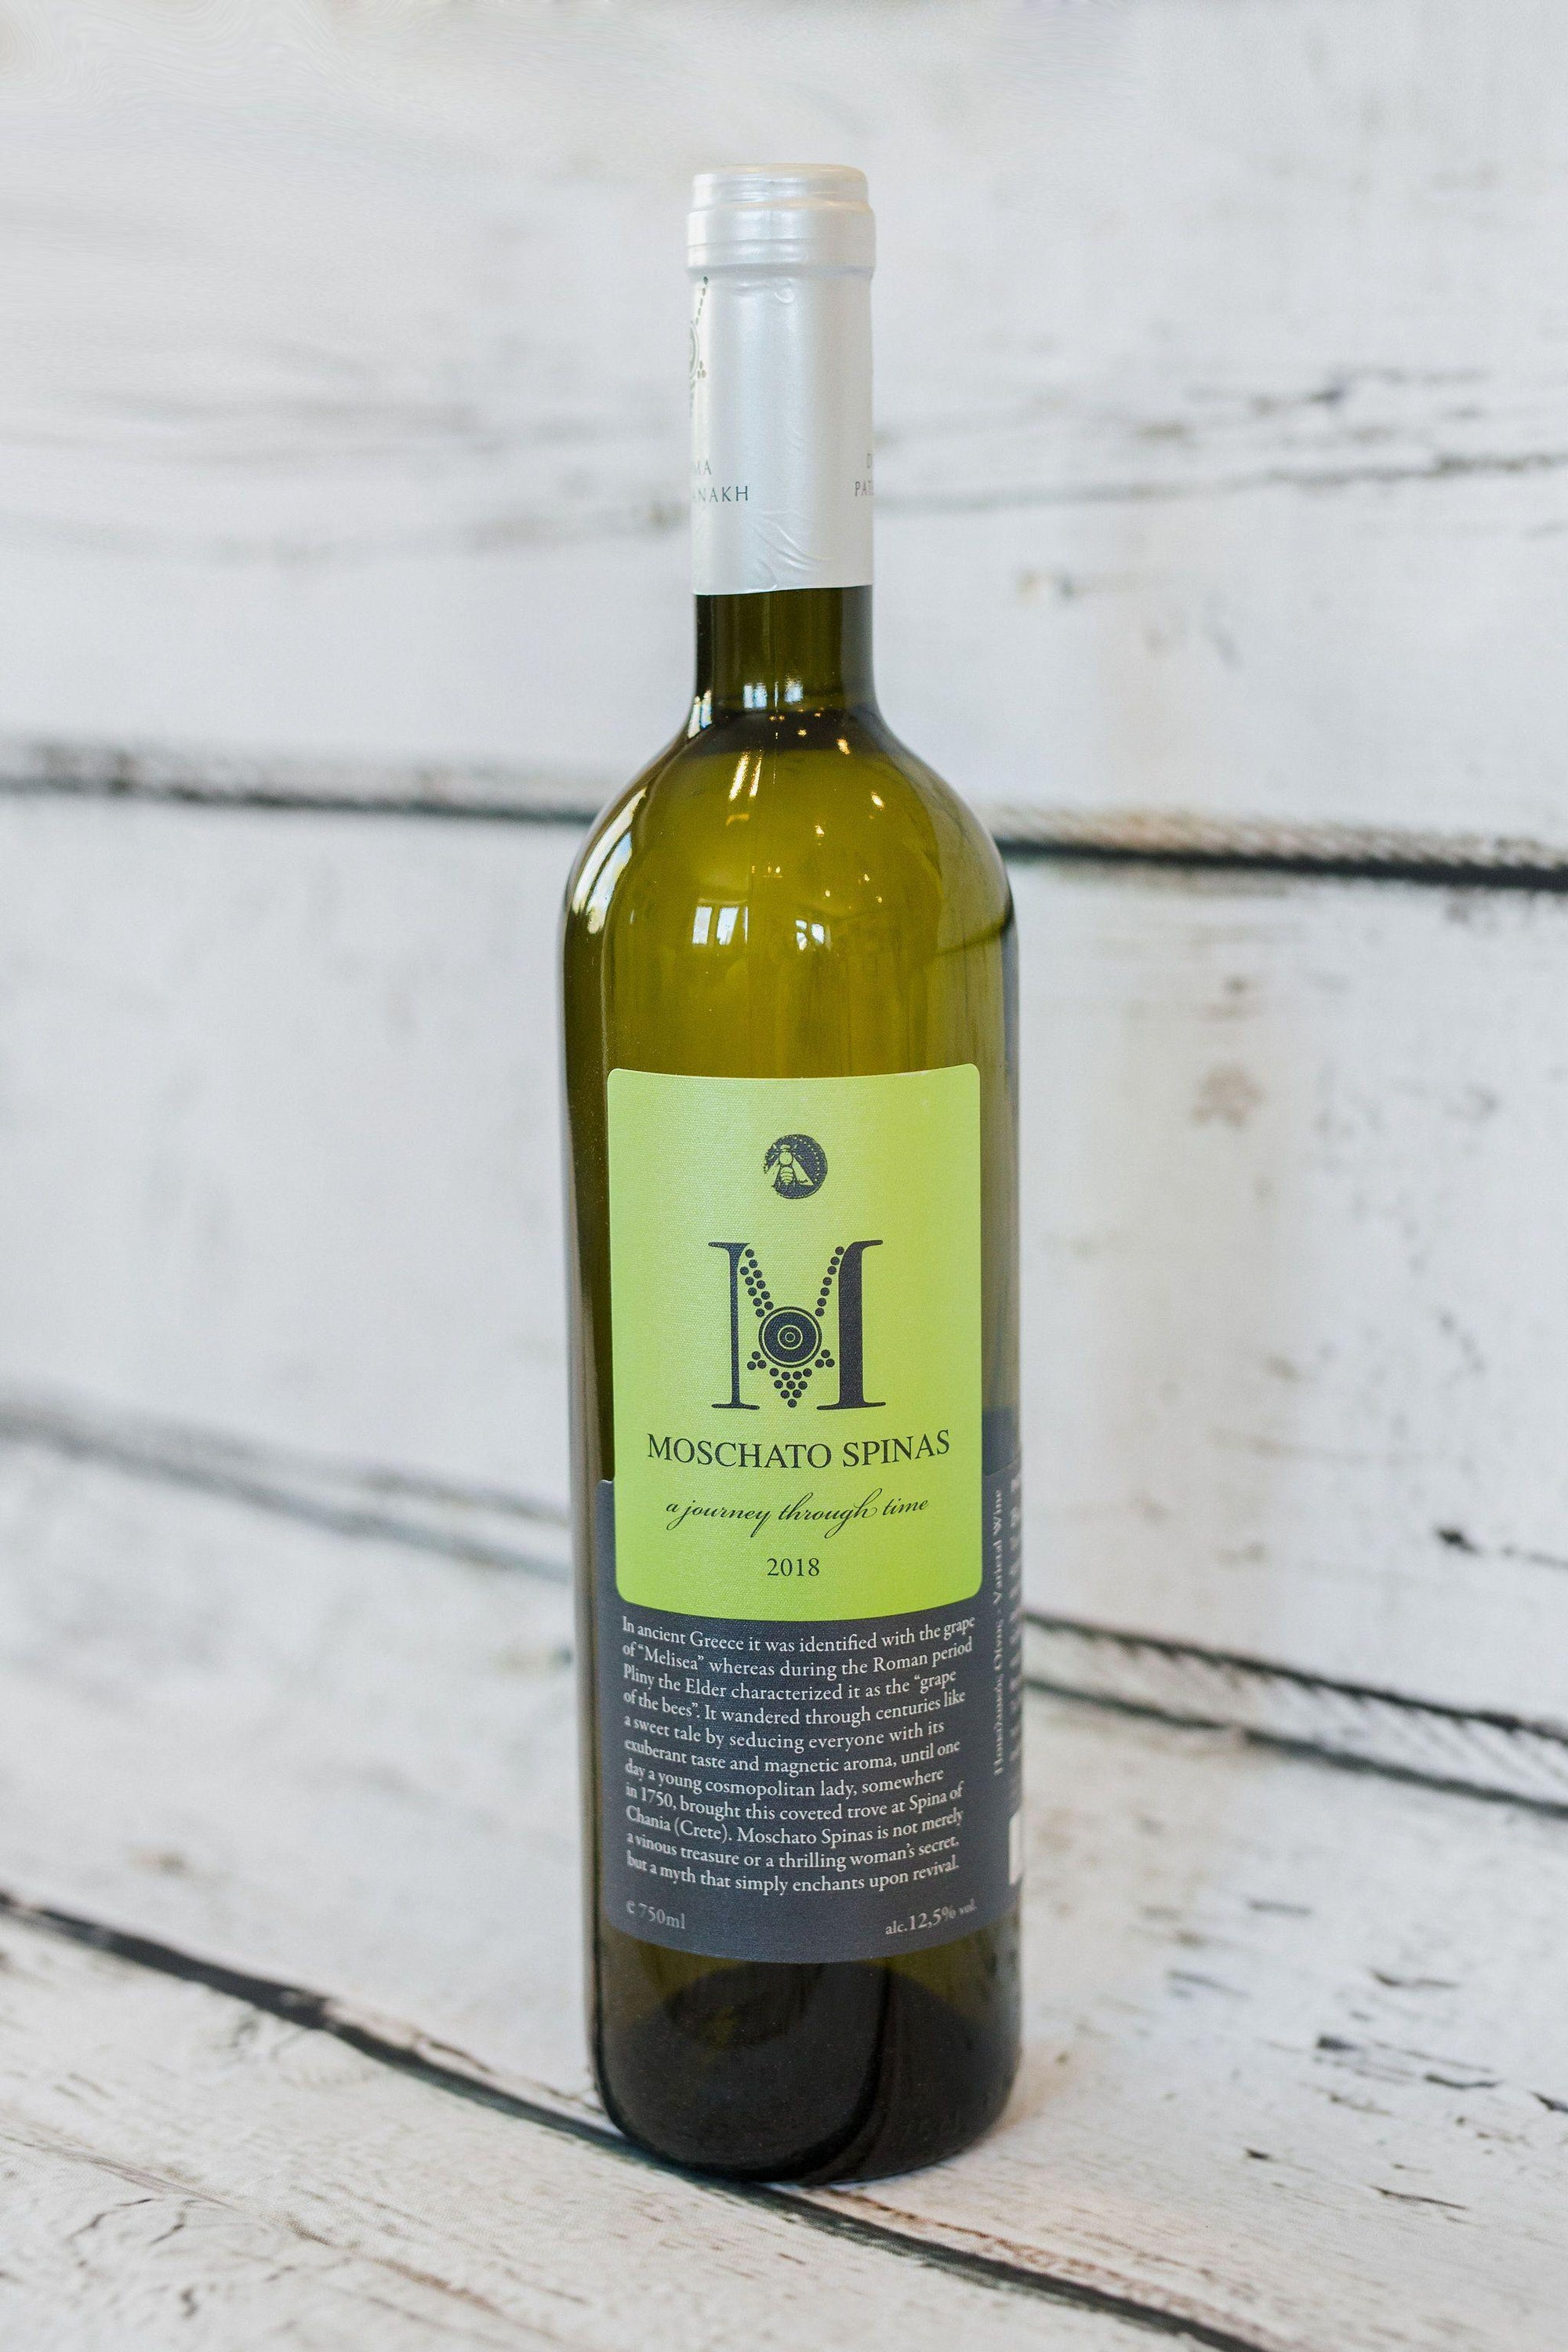 750ml green wine bottle of Moschato Spinas white greek wine from Domain Paterianakis with front yellow label, cork with foil cap